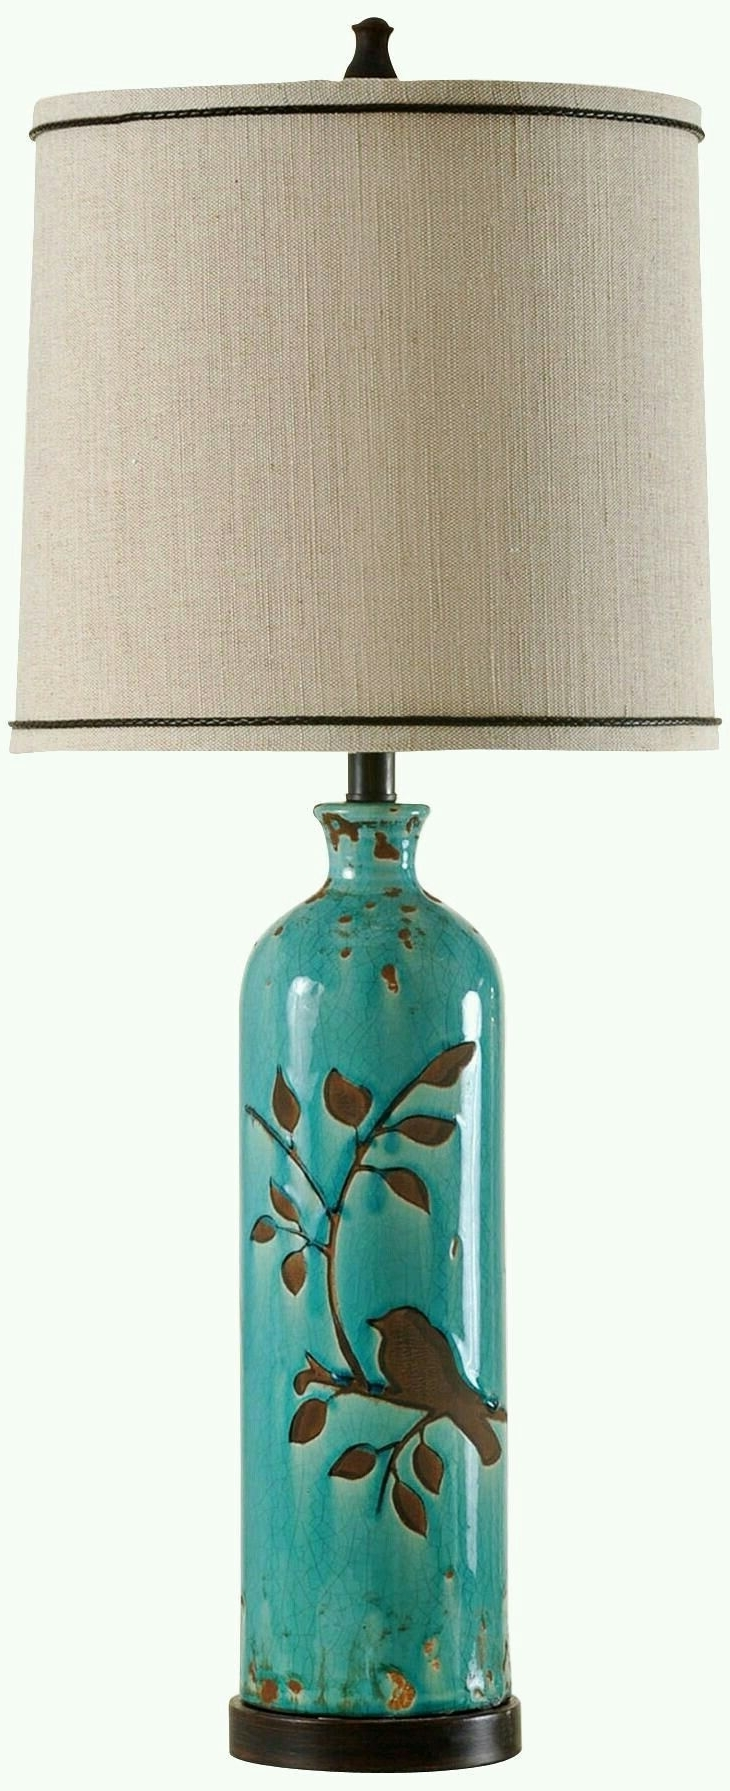 Ceramic Living Room Table Lamps Regarding Widely Used Pinguzin Oz On Iki (View 6 of 20)